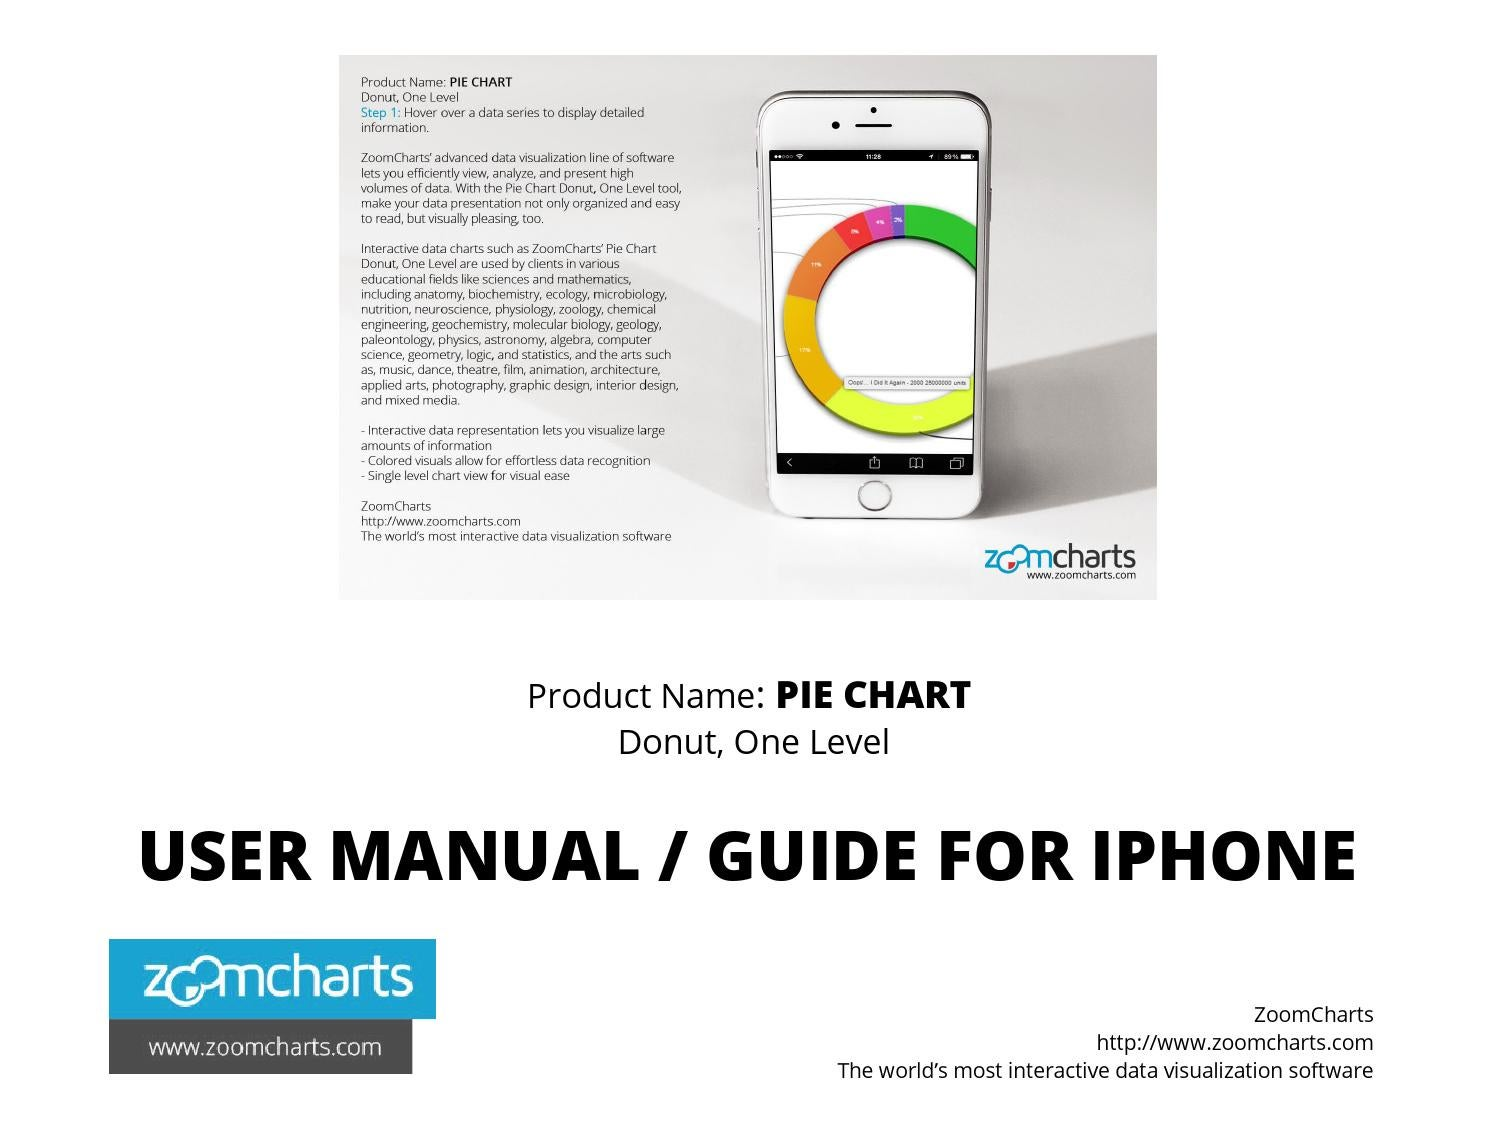 How to Use ZoomCharts Pie Chart - Donut, One Level for